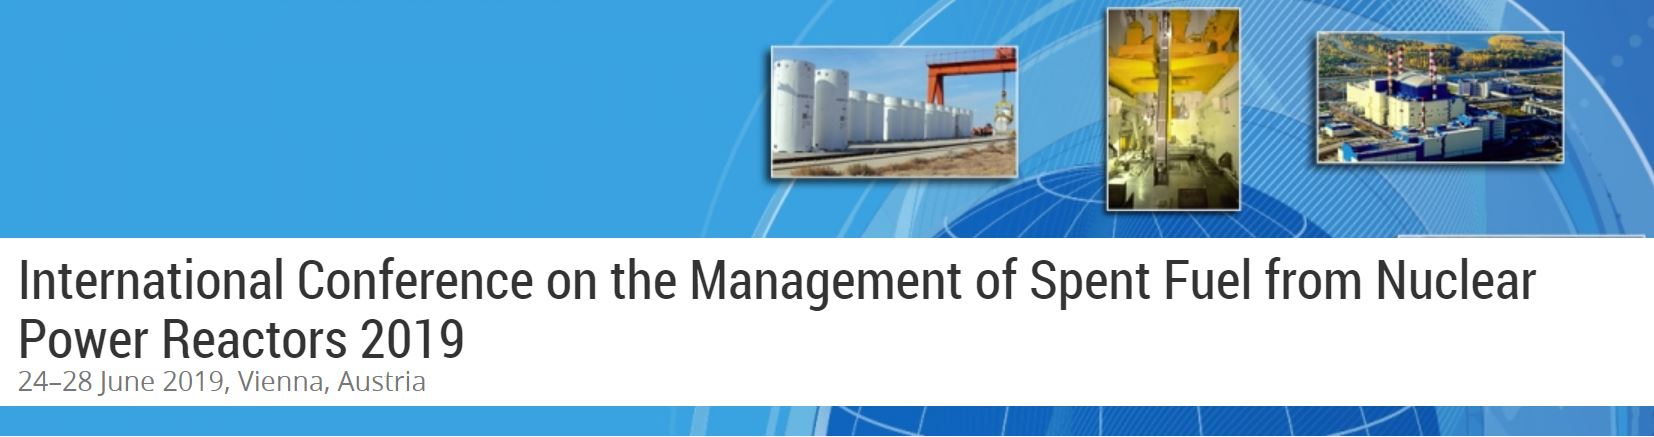 IAEA International Conference on the Management of Spent Fuel from Nuclear Power Reactors 2019